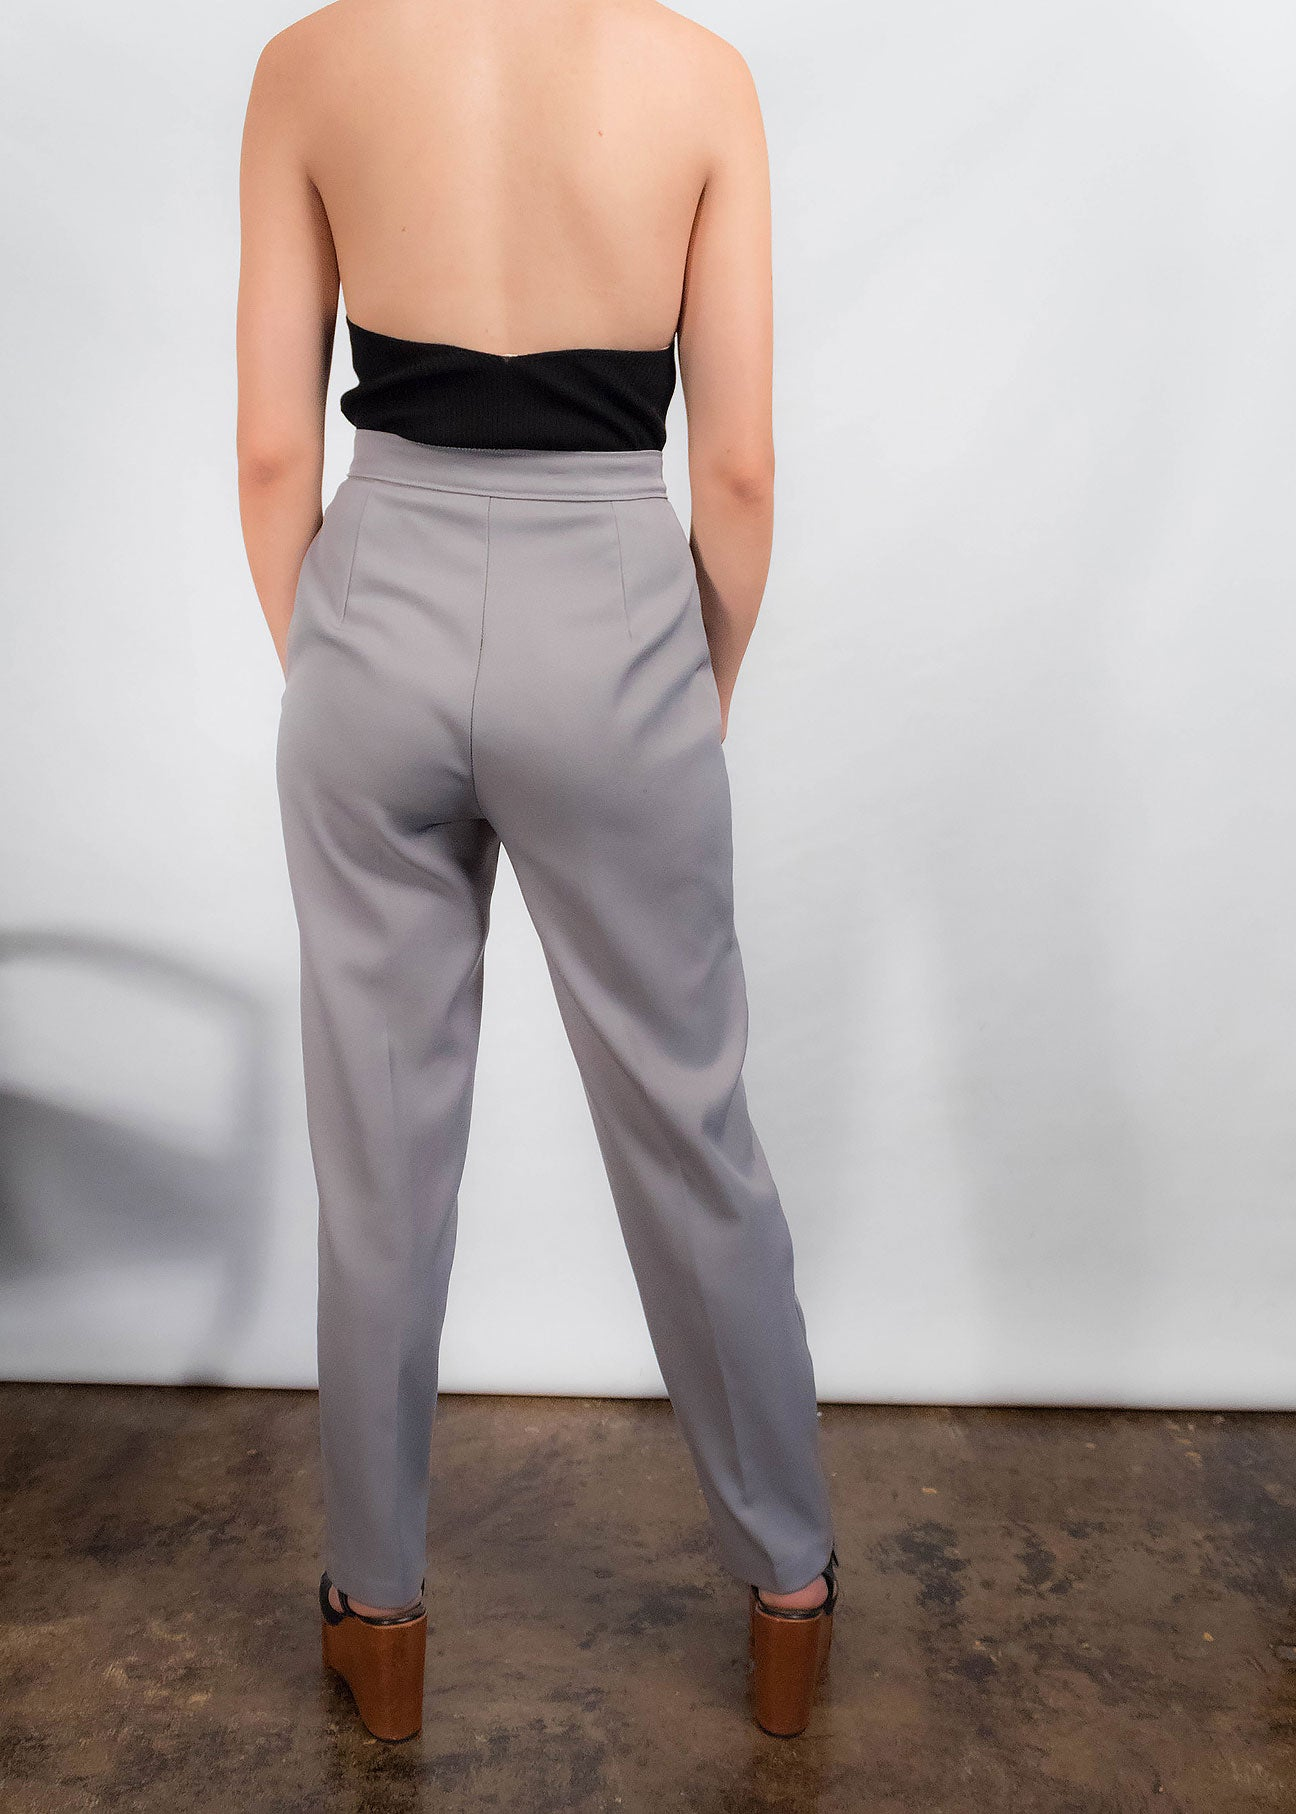 70s High-Waisted Gray Trousers